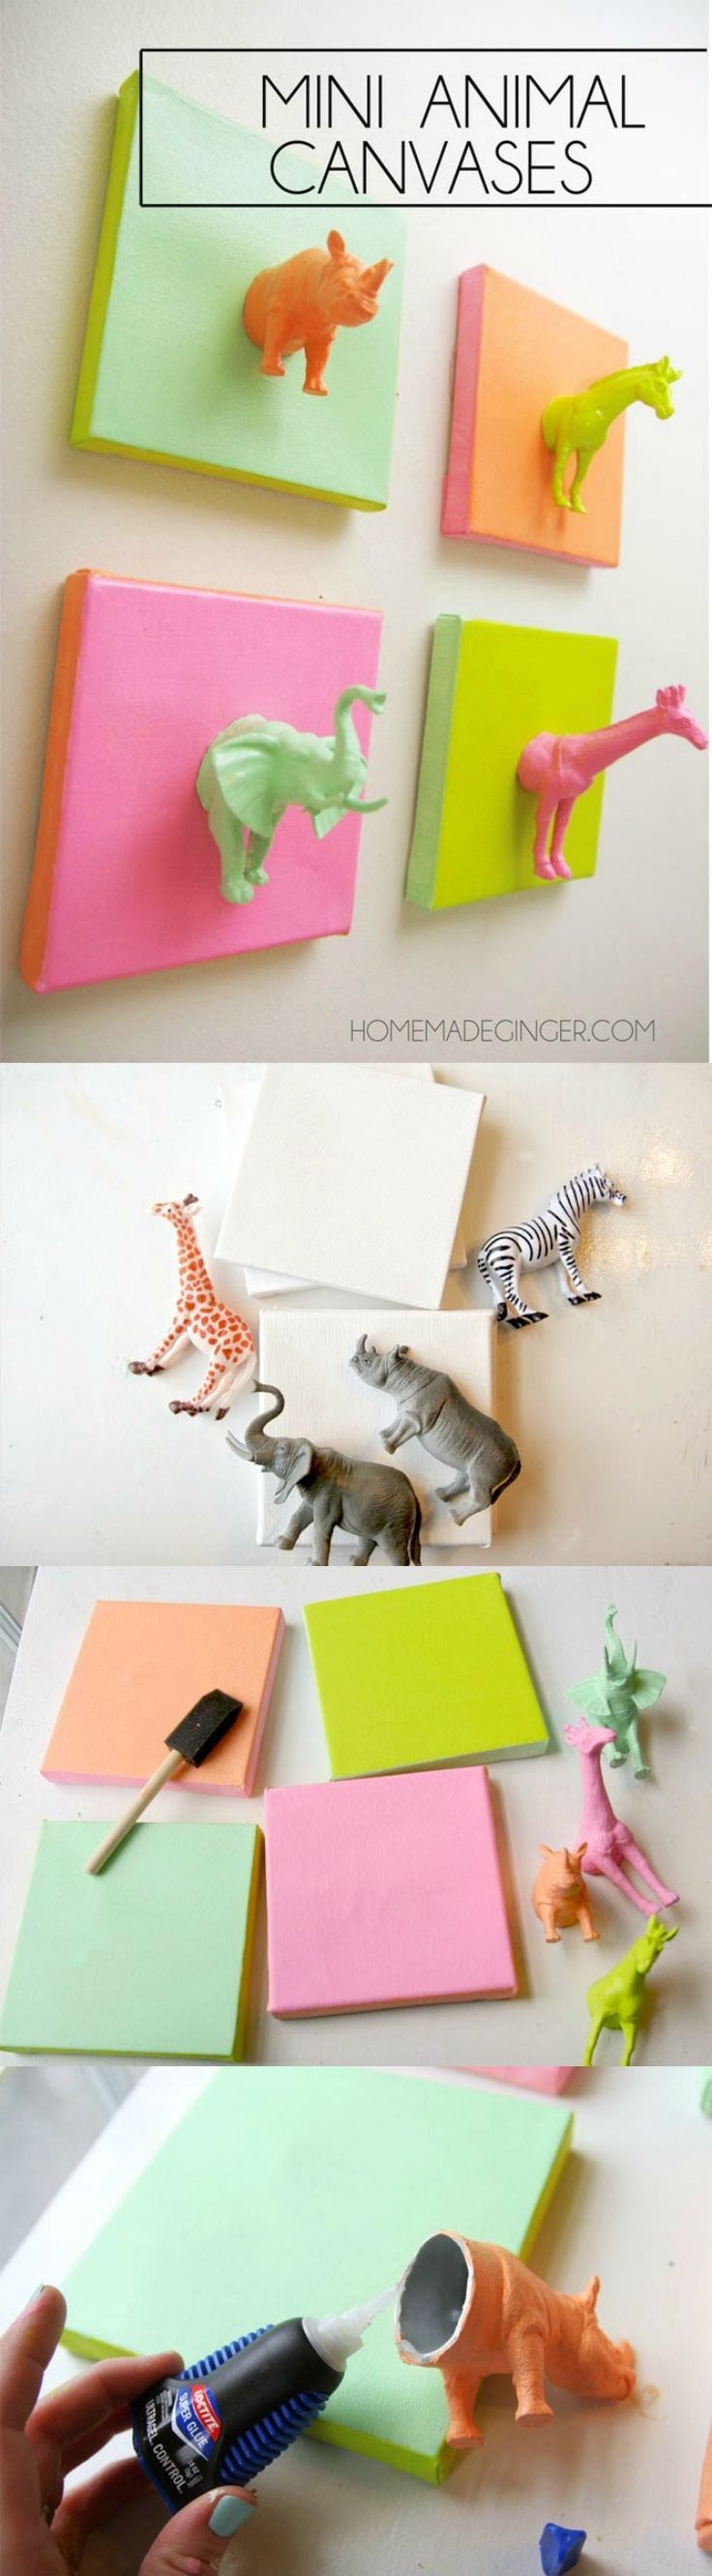 手机壳定制womens volleyball shoes sale This cute DIY canvas project made with plastic animals is such a fun and easy idea It   s perfect for a nursery kids   room or craft studio